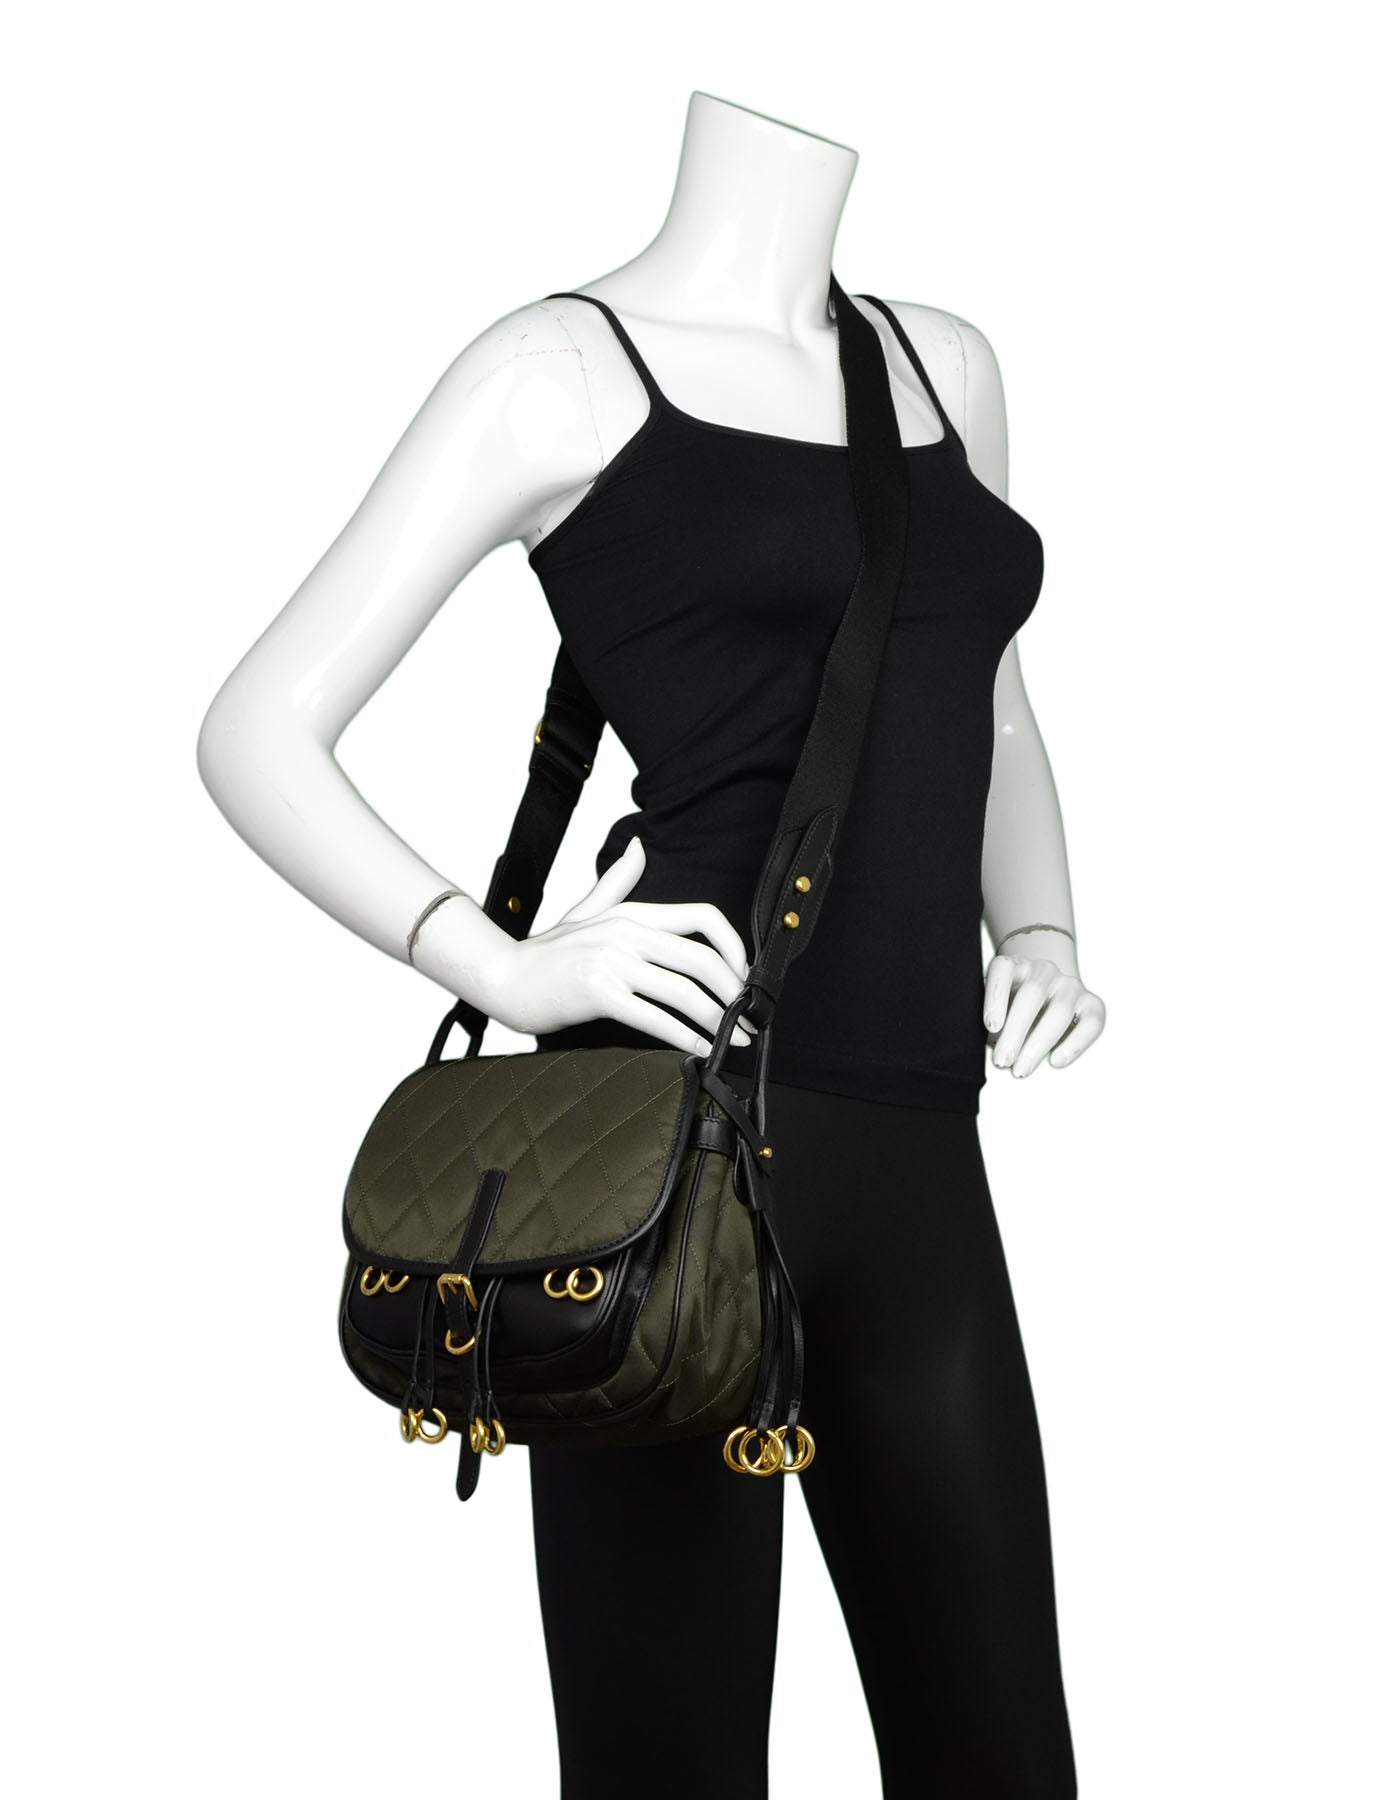 fb9938a9faa Prada 2016 Army Green Nylon and Leather Quilted Corsaire Messenger  Crossbody Bag at 1stdibs